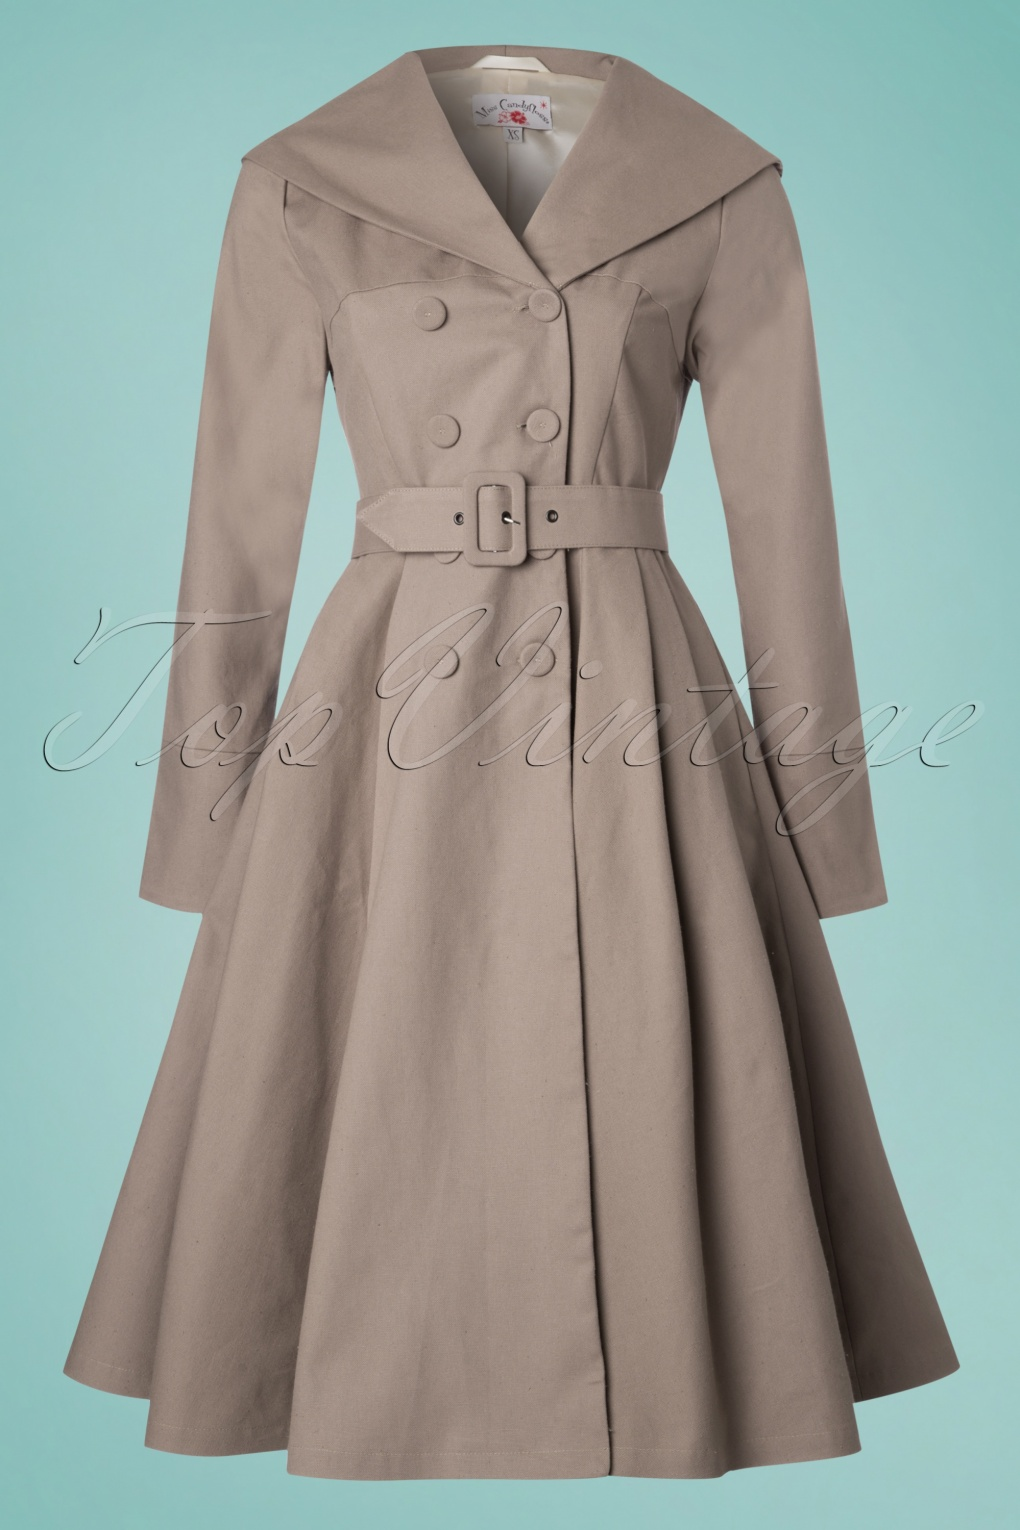 1950s Jackets and Coats | Swing, Pin Up, Rockabilly 50s Antonella Swing Trench Coat in Sand £138.15 AT vintagedancer.com